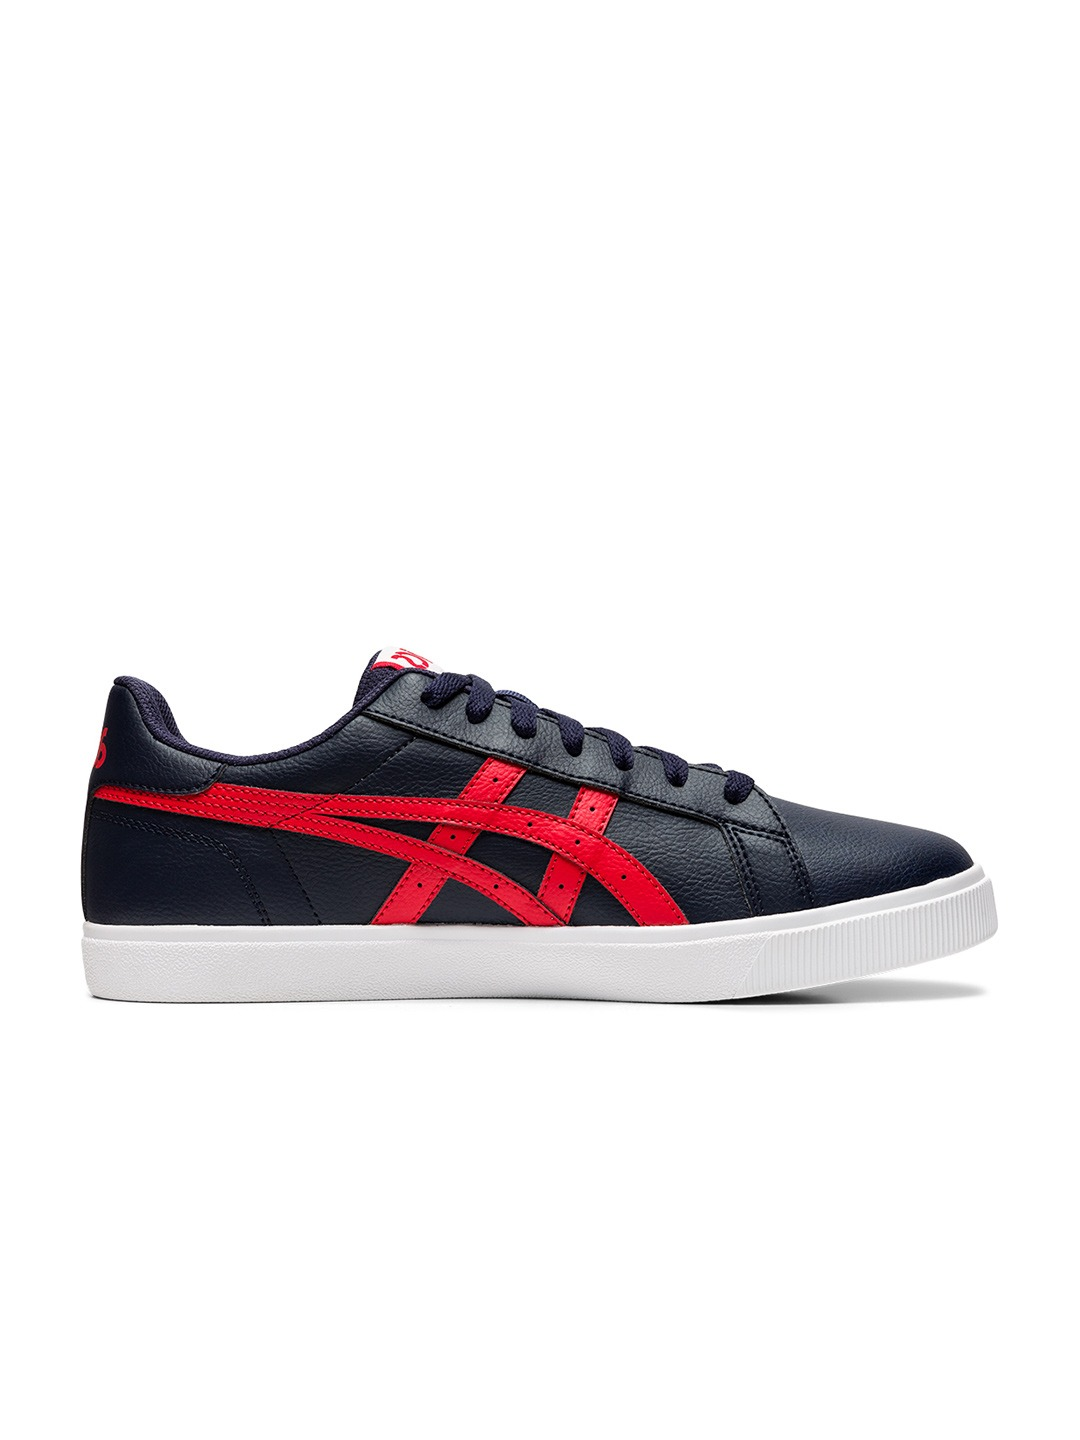 Navy Blue & Red Solid Classic CT Sneakers